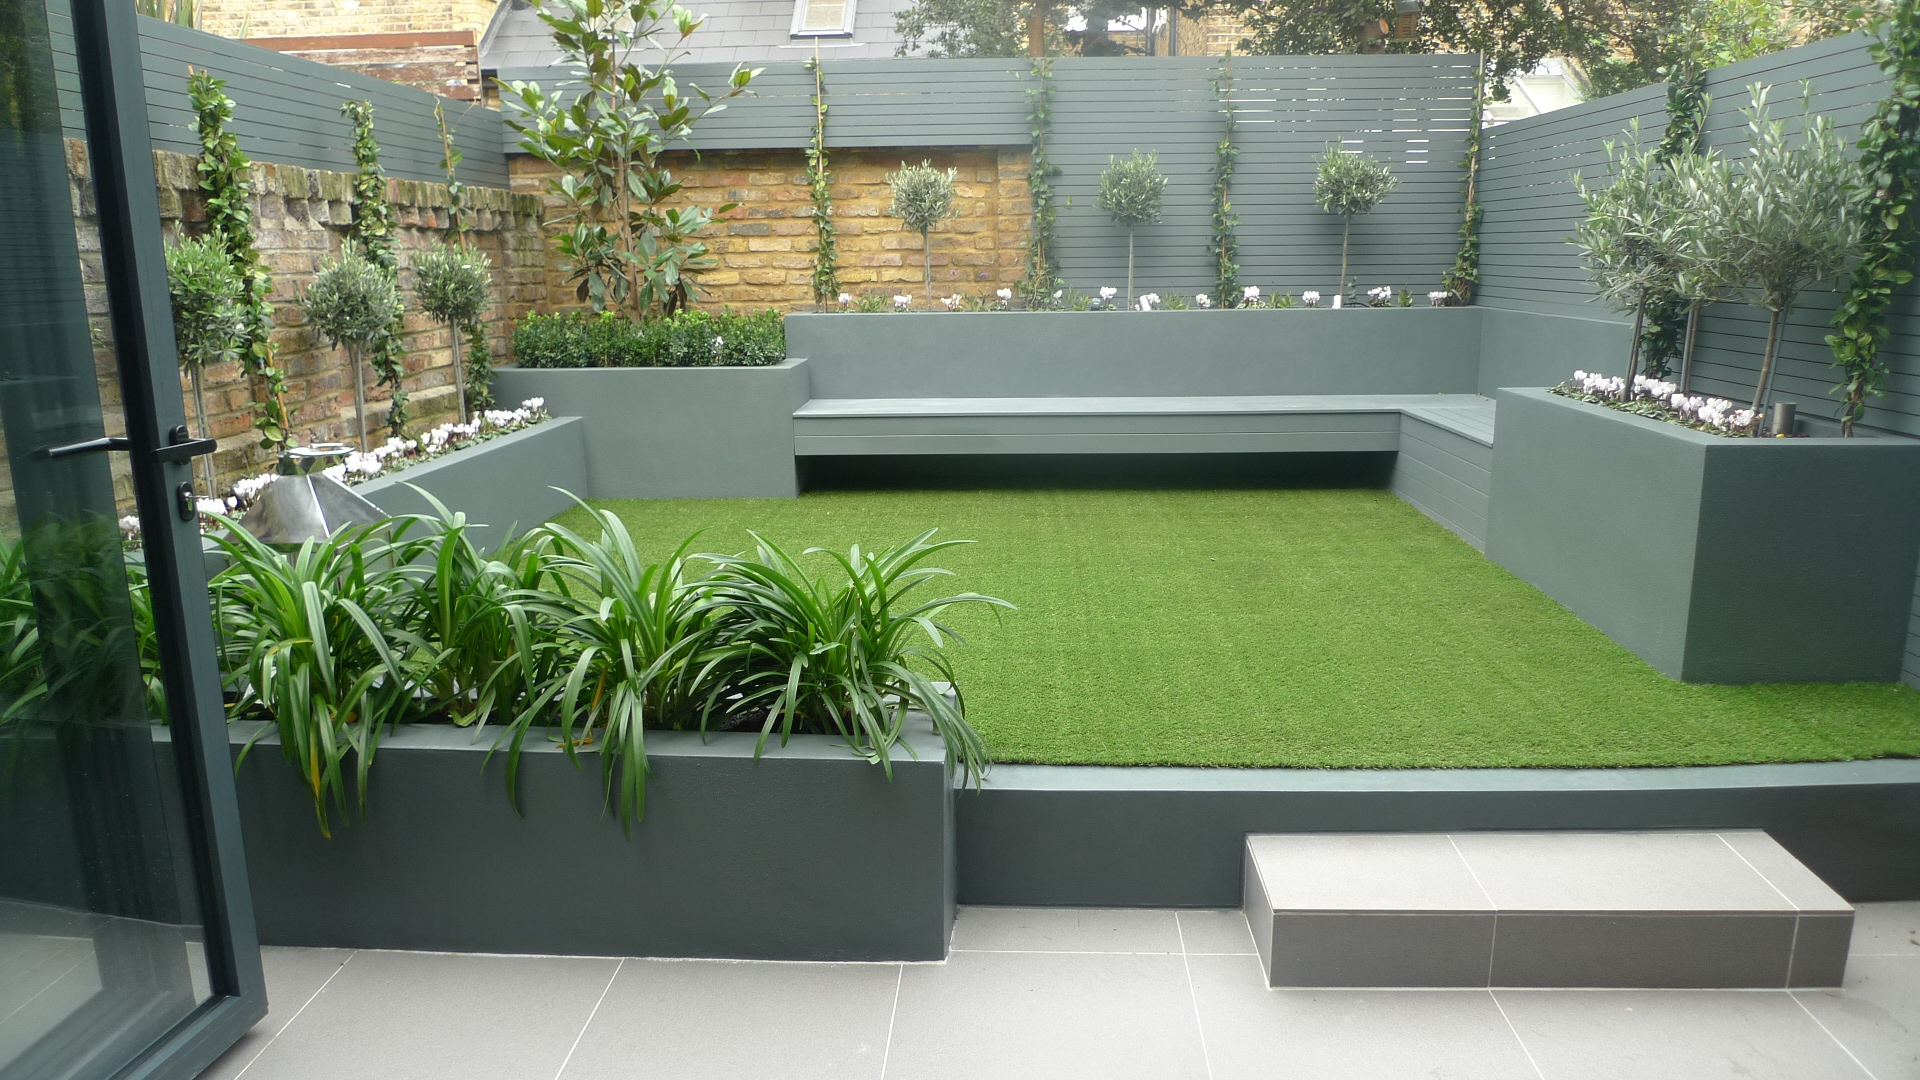 London garden design garden design for Low maintenance garden design